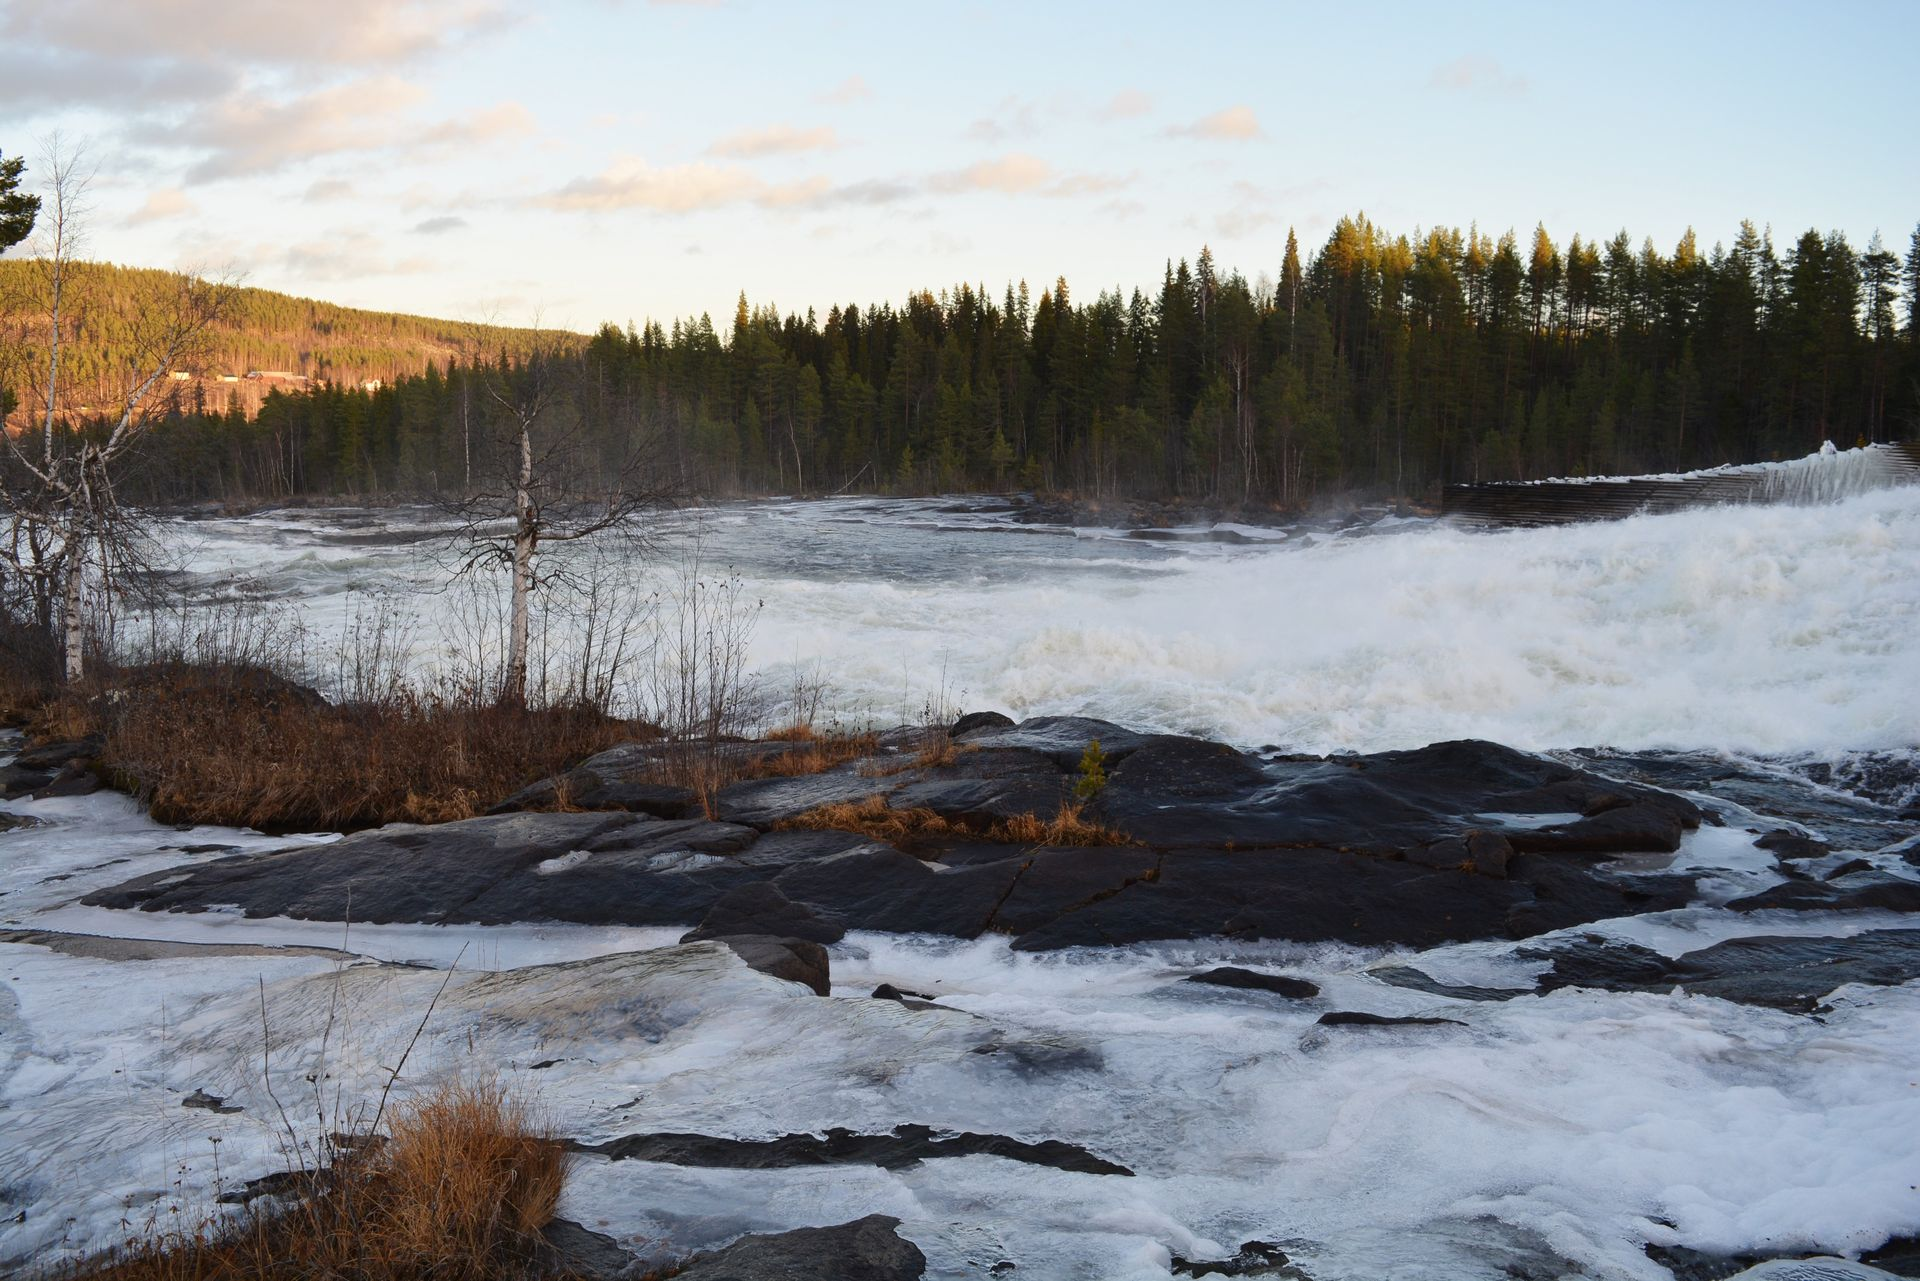 Visit Storforsen, the amazing waterfall.